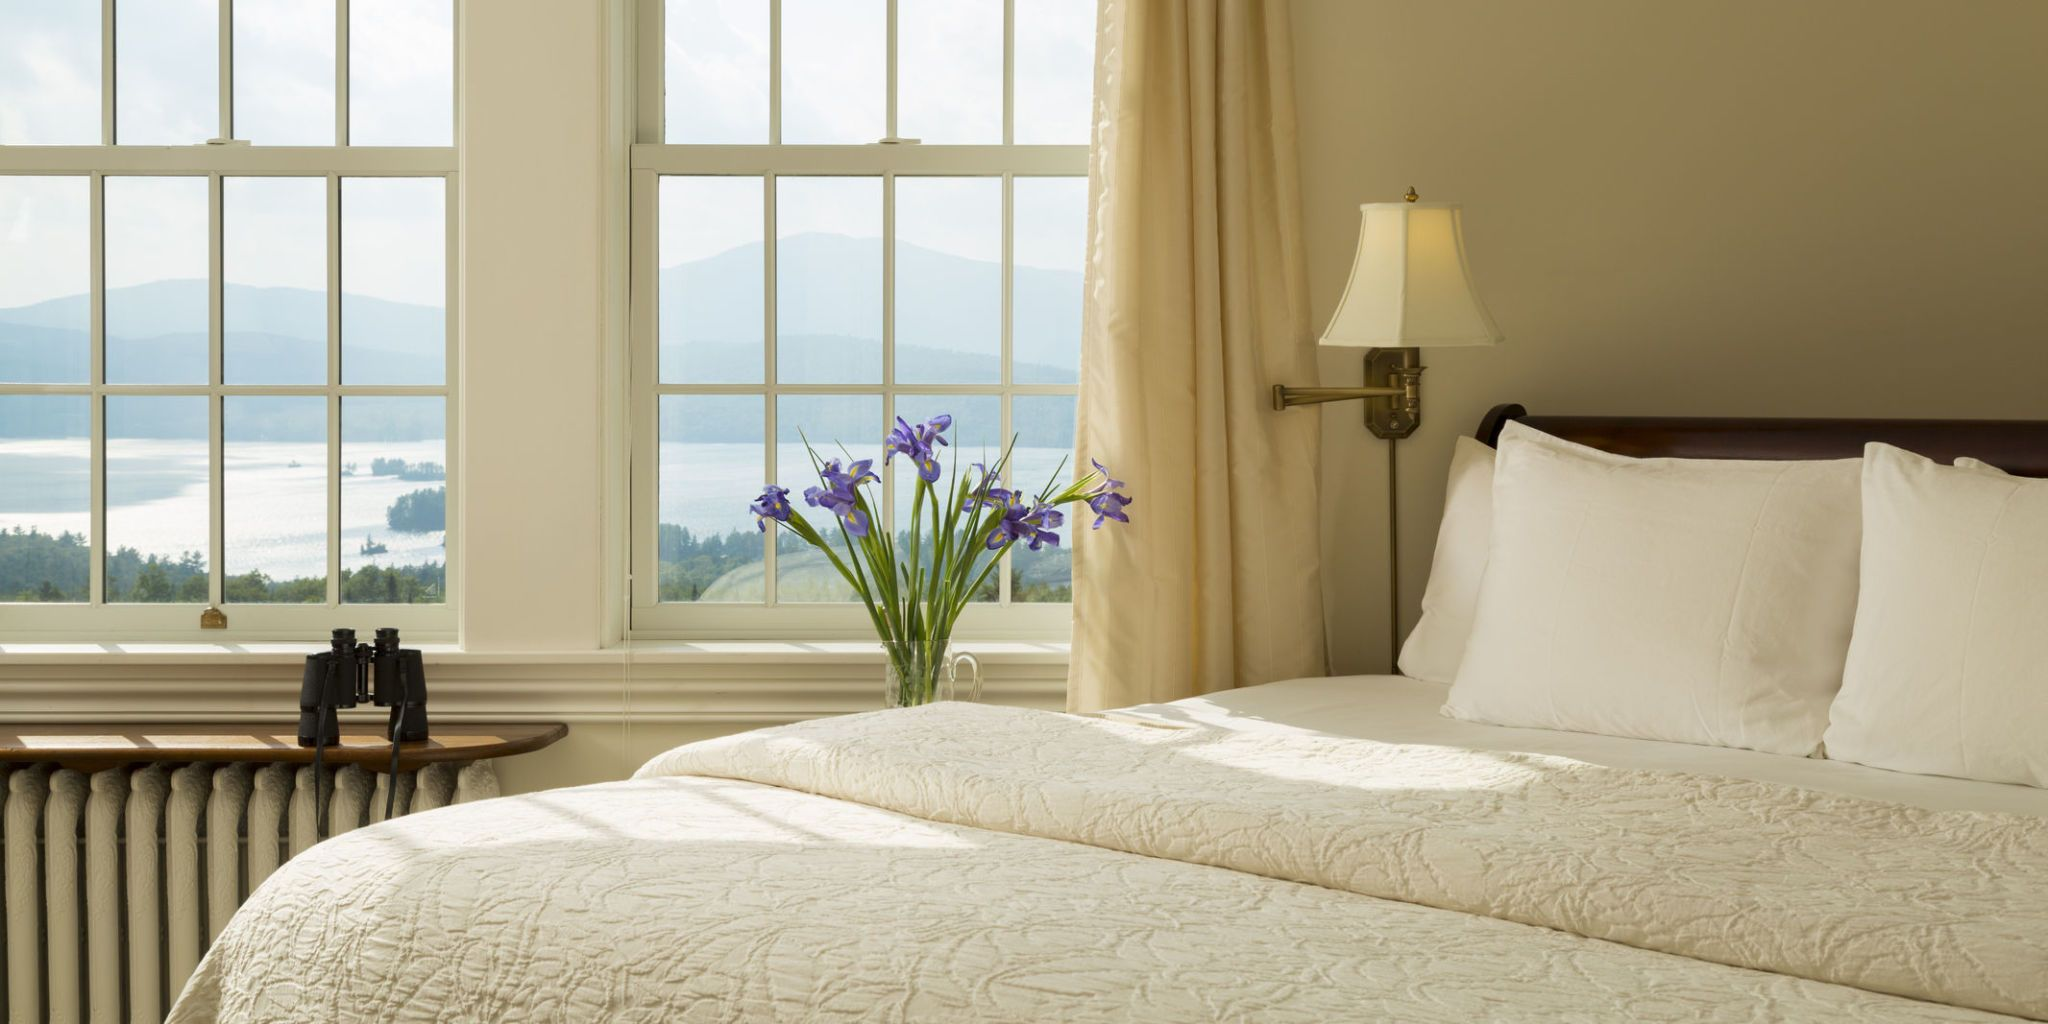 13 Interior Designer Tricks to Make Your Windows Look Bigger